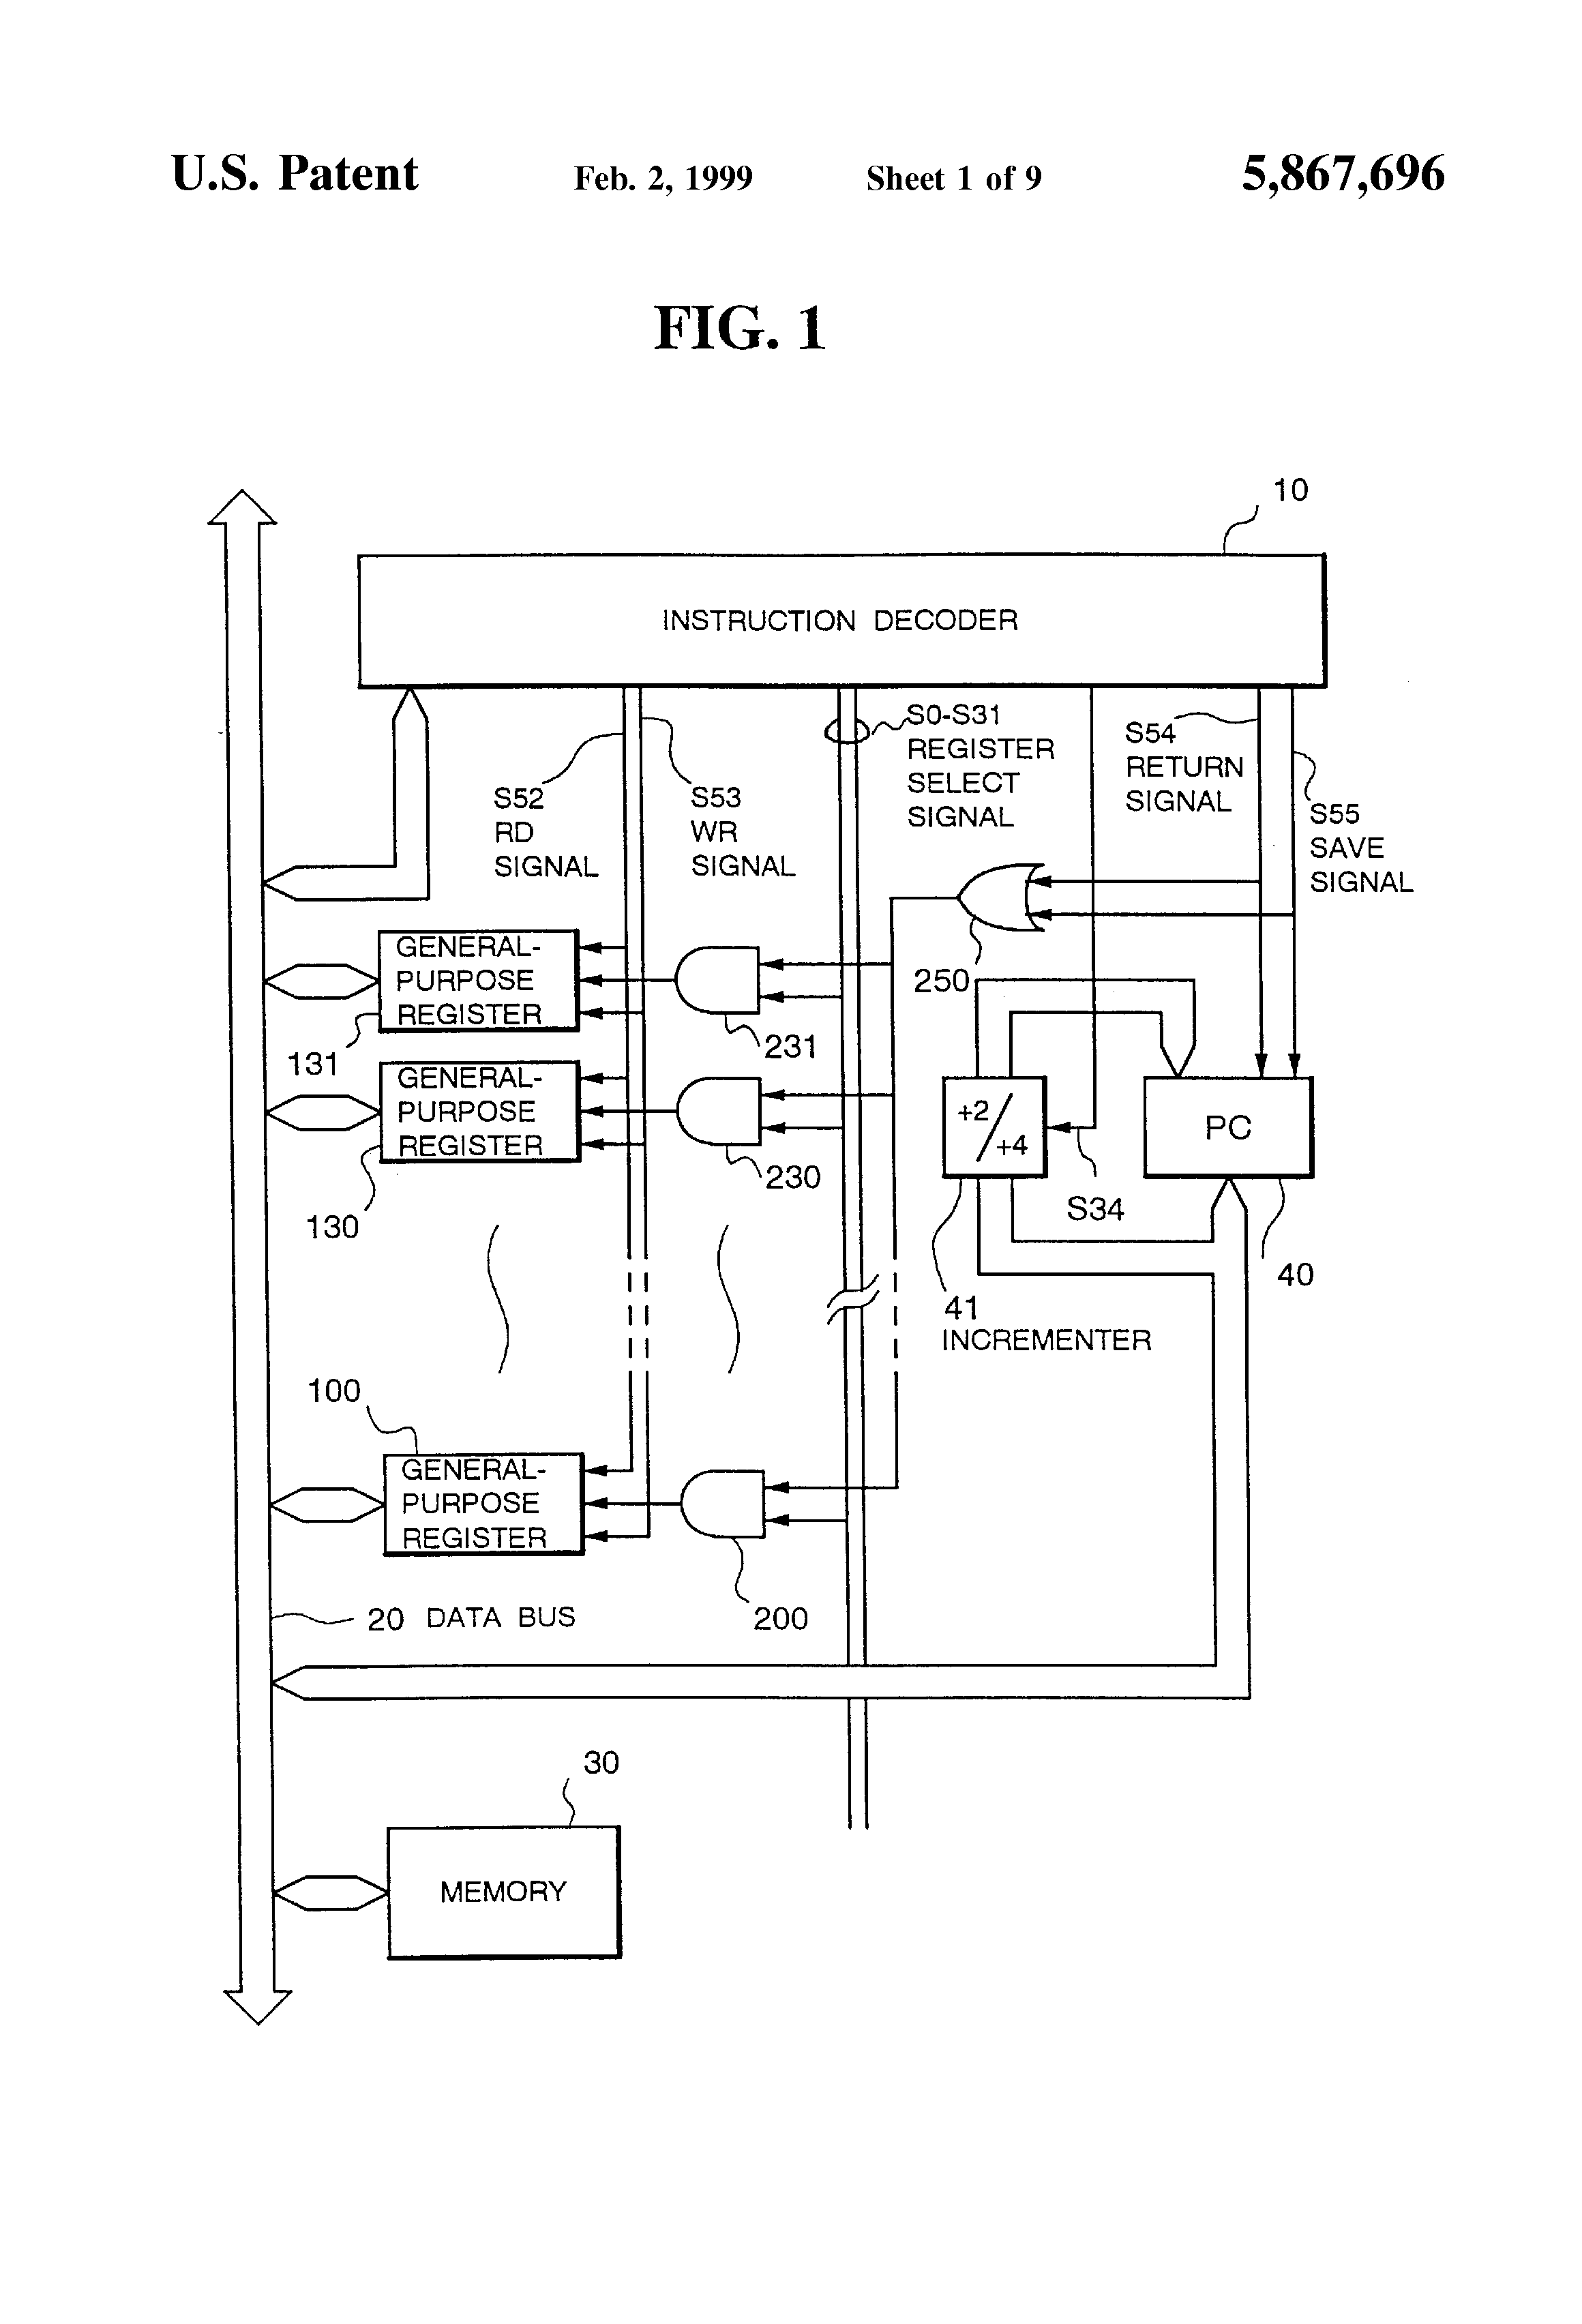 441 Singlechip Microcomputer Integrated Circuit Diagram Schematic Yaesu G 1000dxc Patent Us5867696 Saving A Program Counter Value As The Return